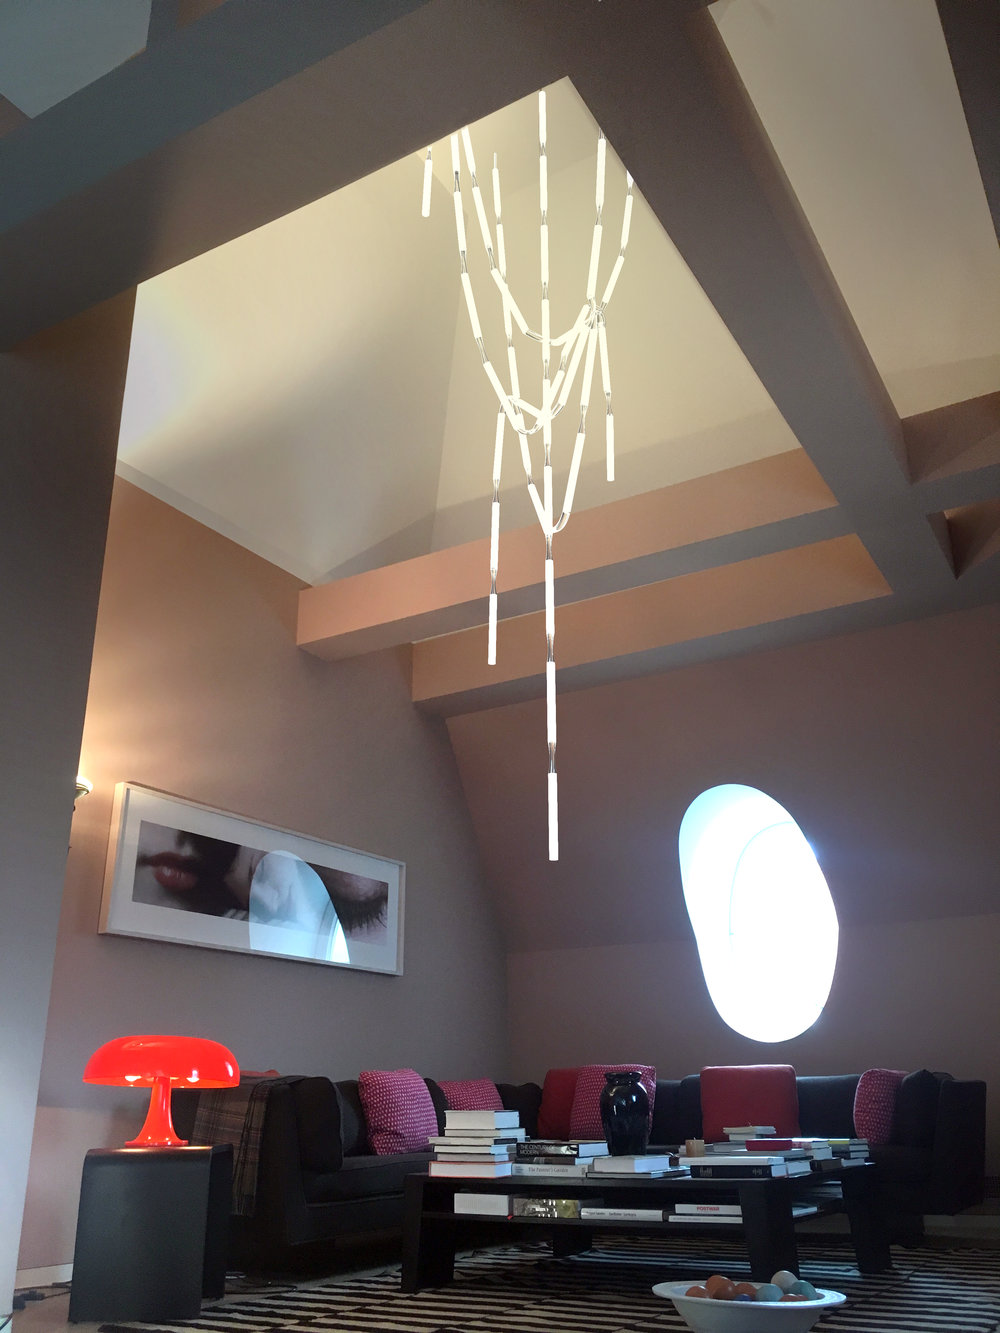 AKTTEM-Rope-Light-Chandelier-VK-Penthouse.jpg